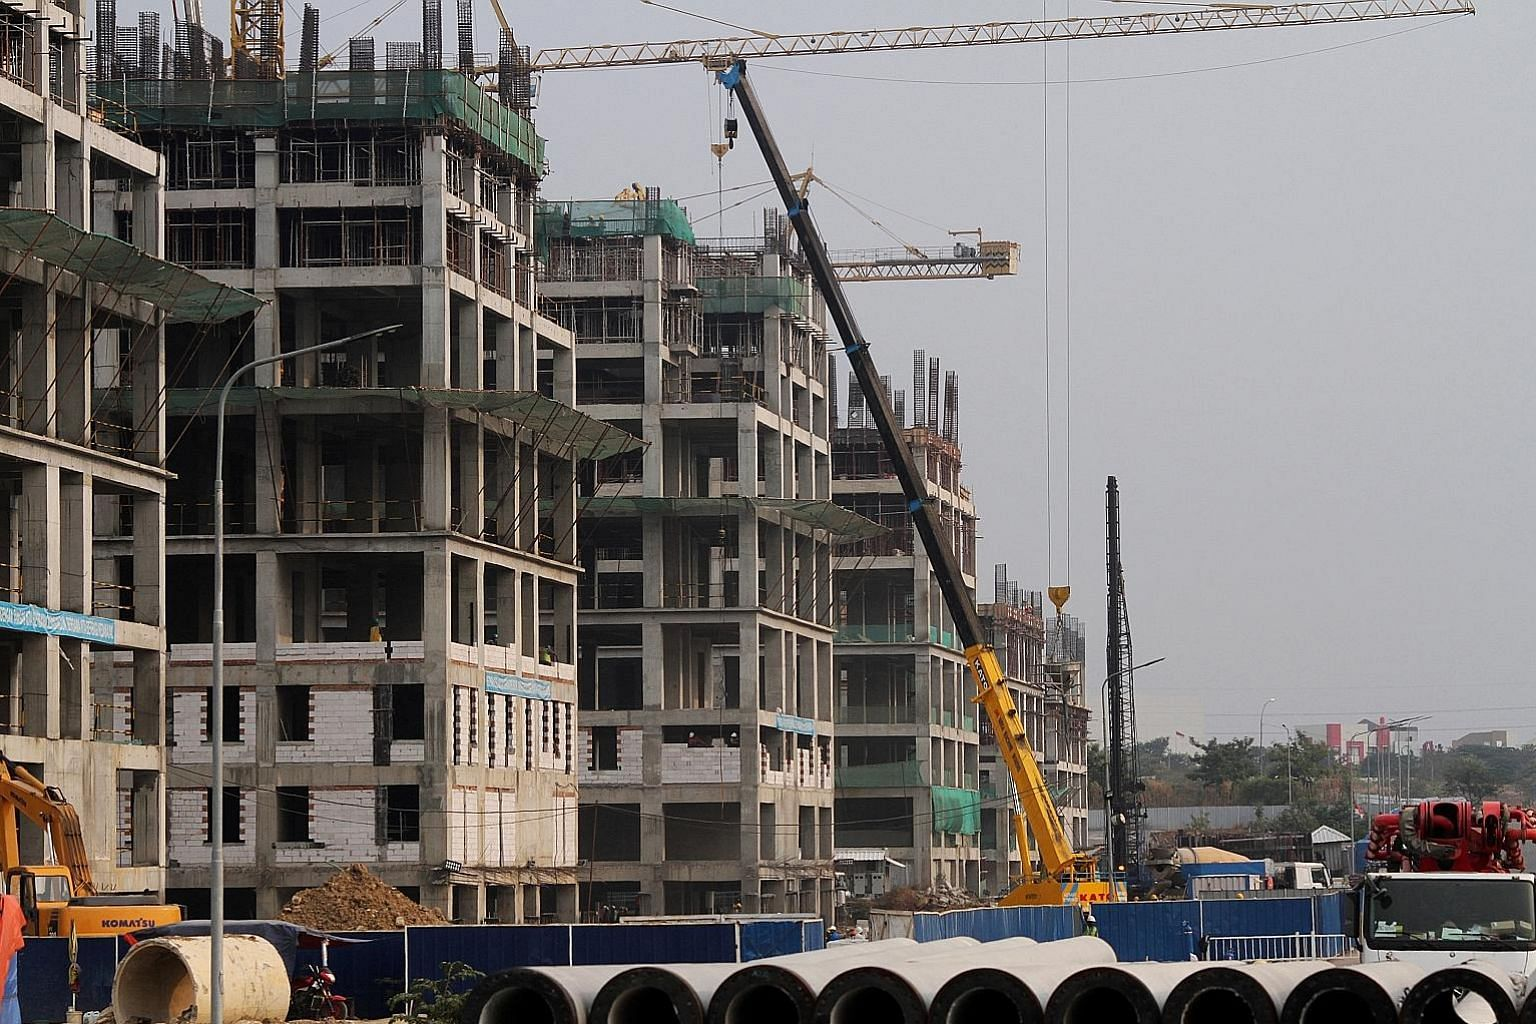 Construction of flats at the Meikarta project in Bekasi this week. The raids come after the arrests of two Lippo consultants and an employee accused of trying to pay off city officials to obtain property permits for the project.